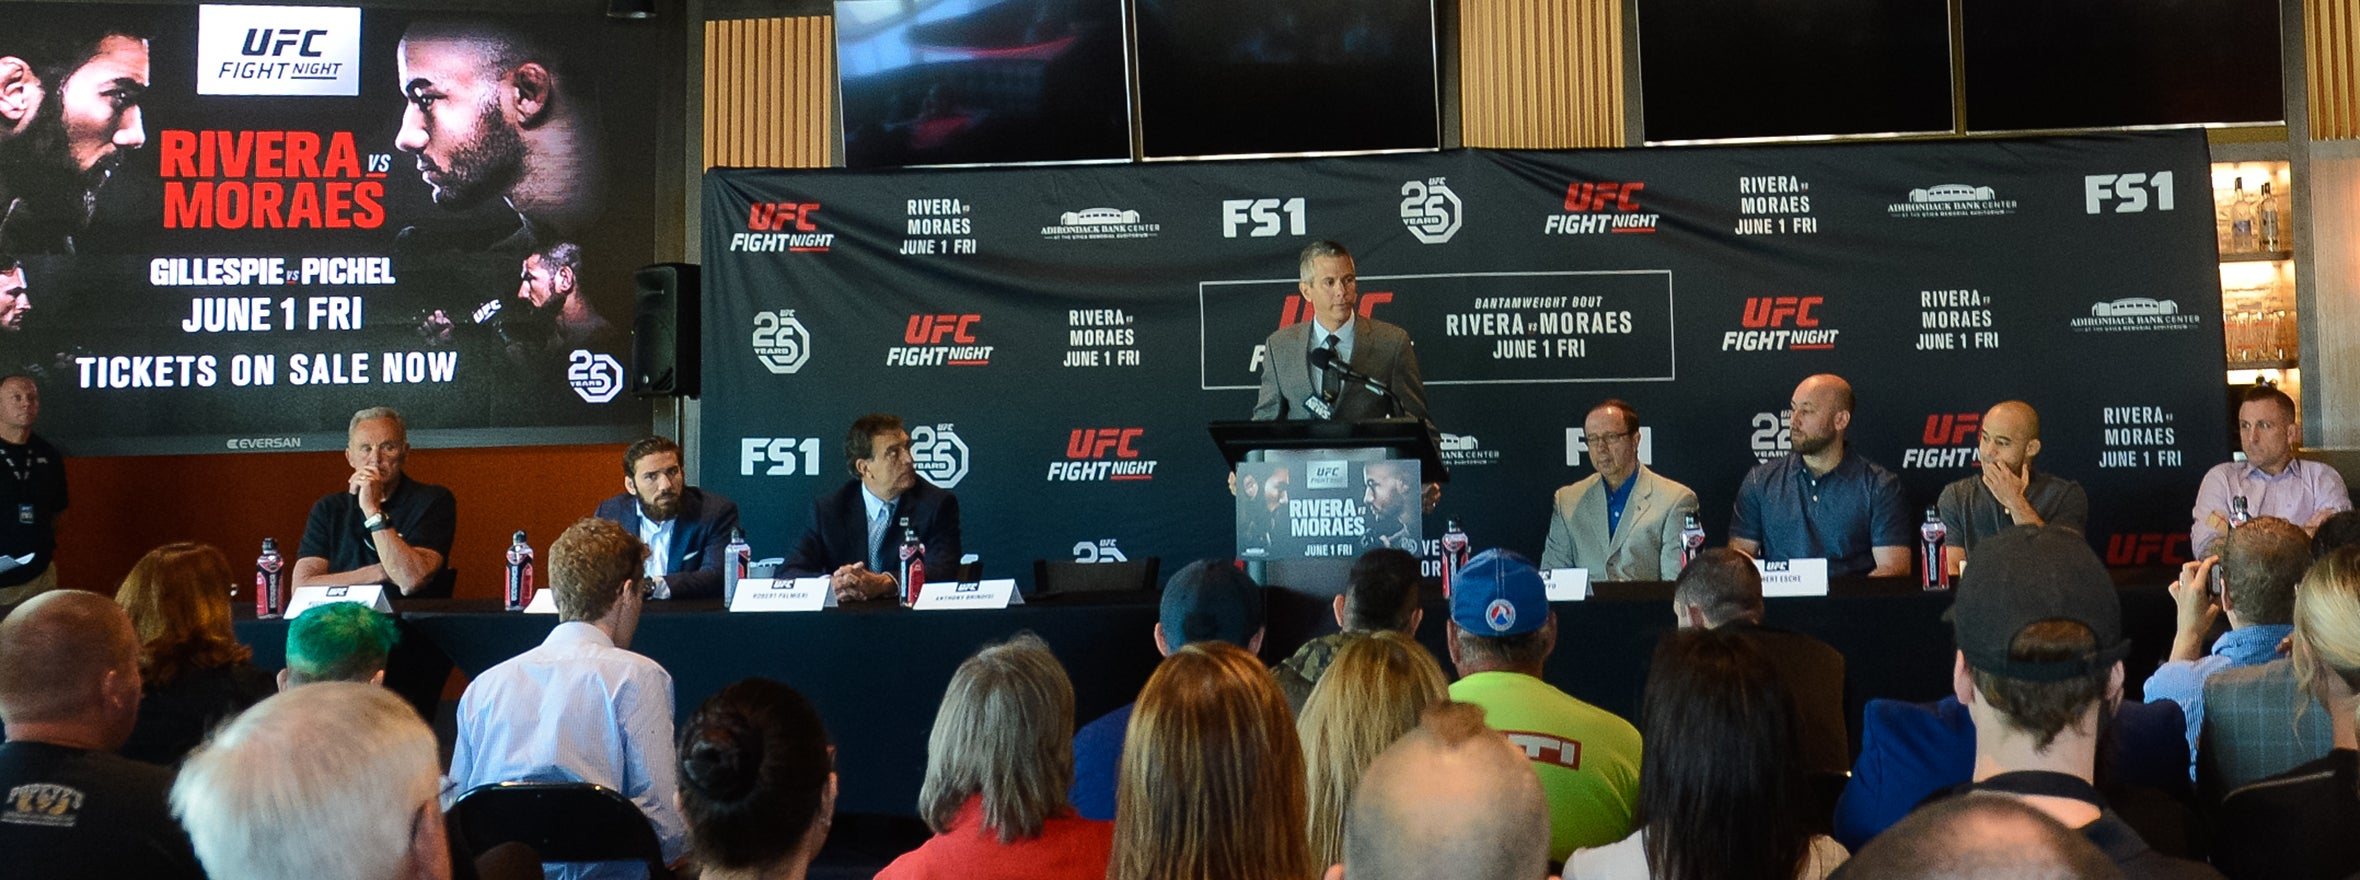 UFC NEWS CONFERENCE KICKS OFF FIGHT WEEK